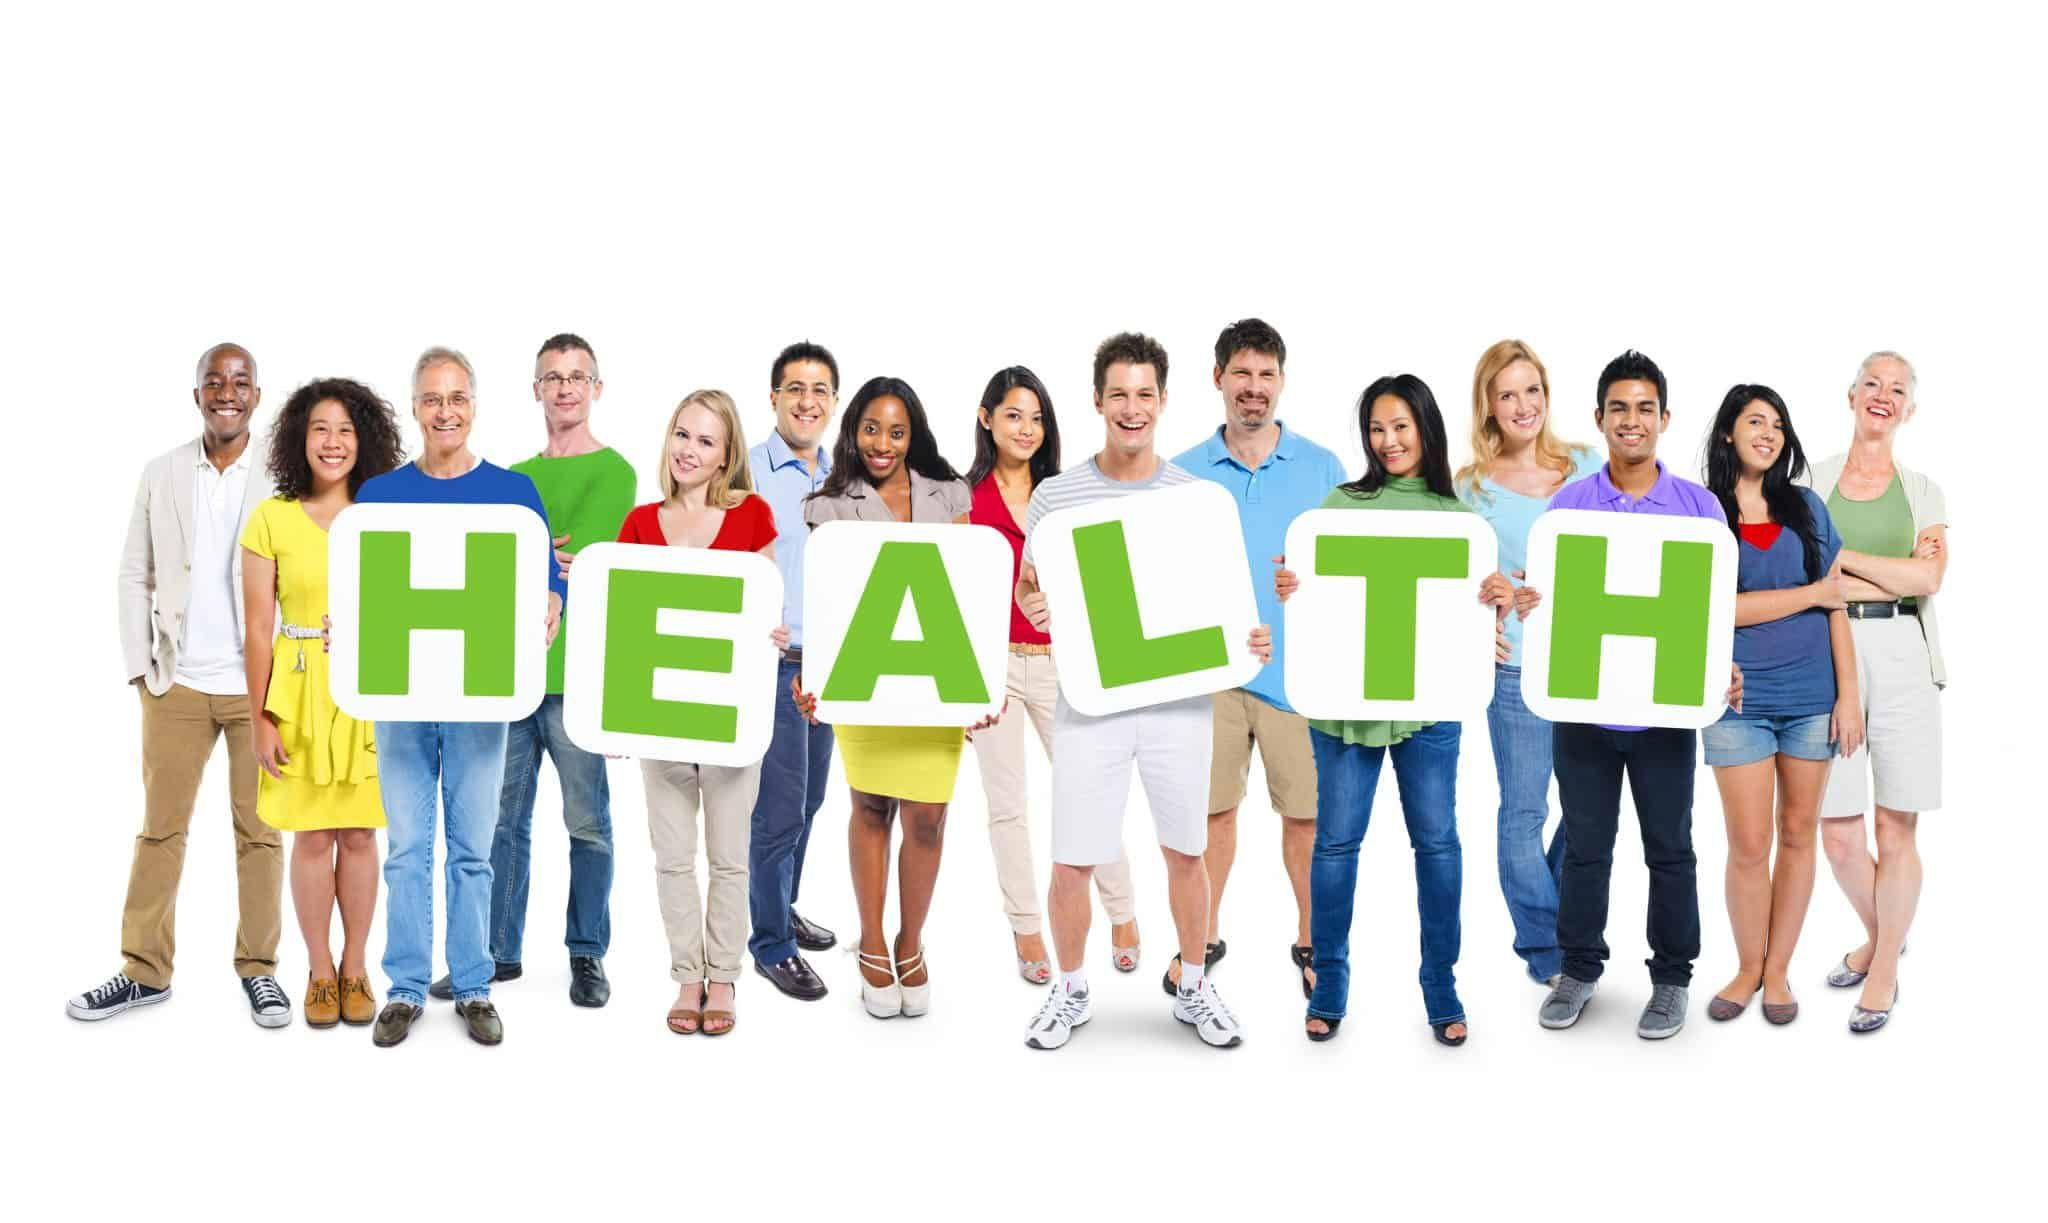 Can You Still Grow Taller and in Good Health? Health